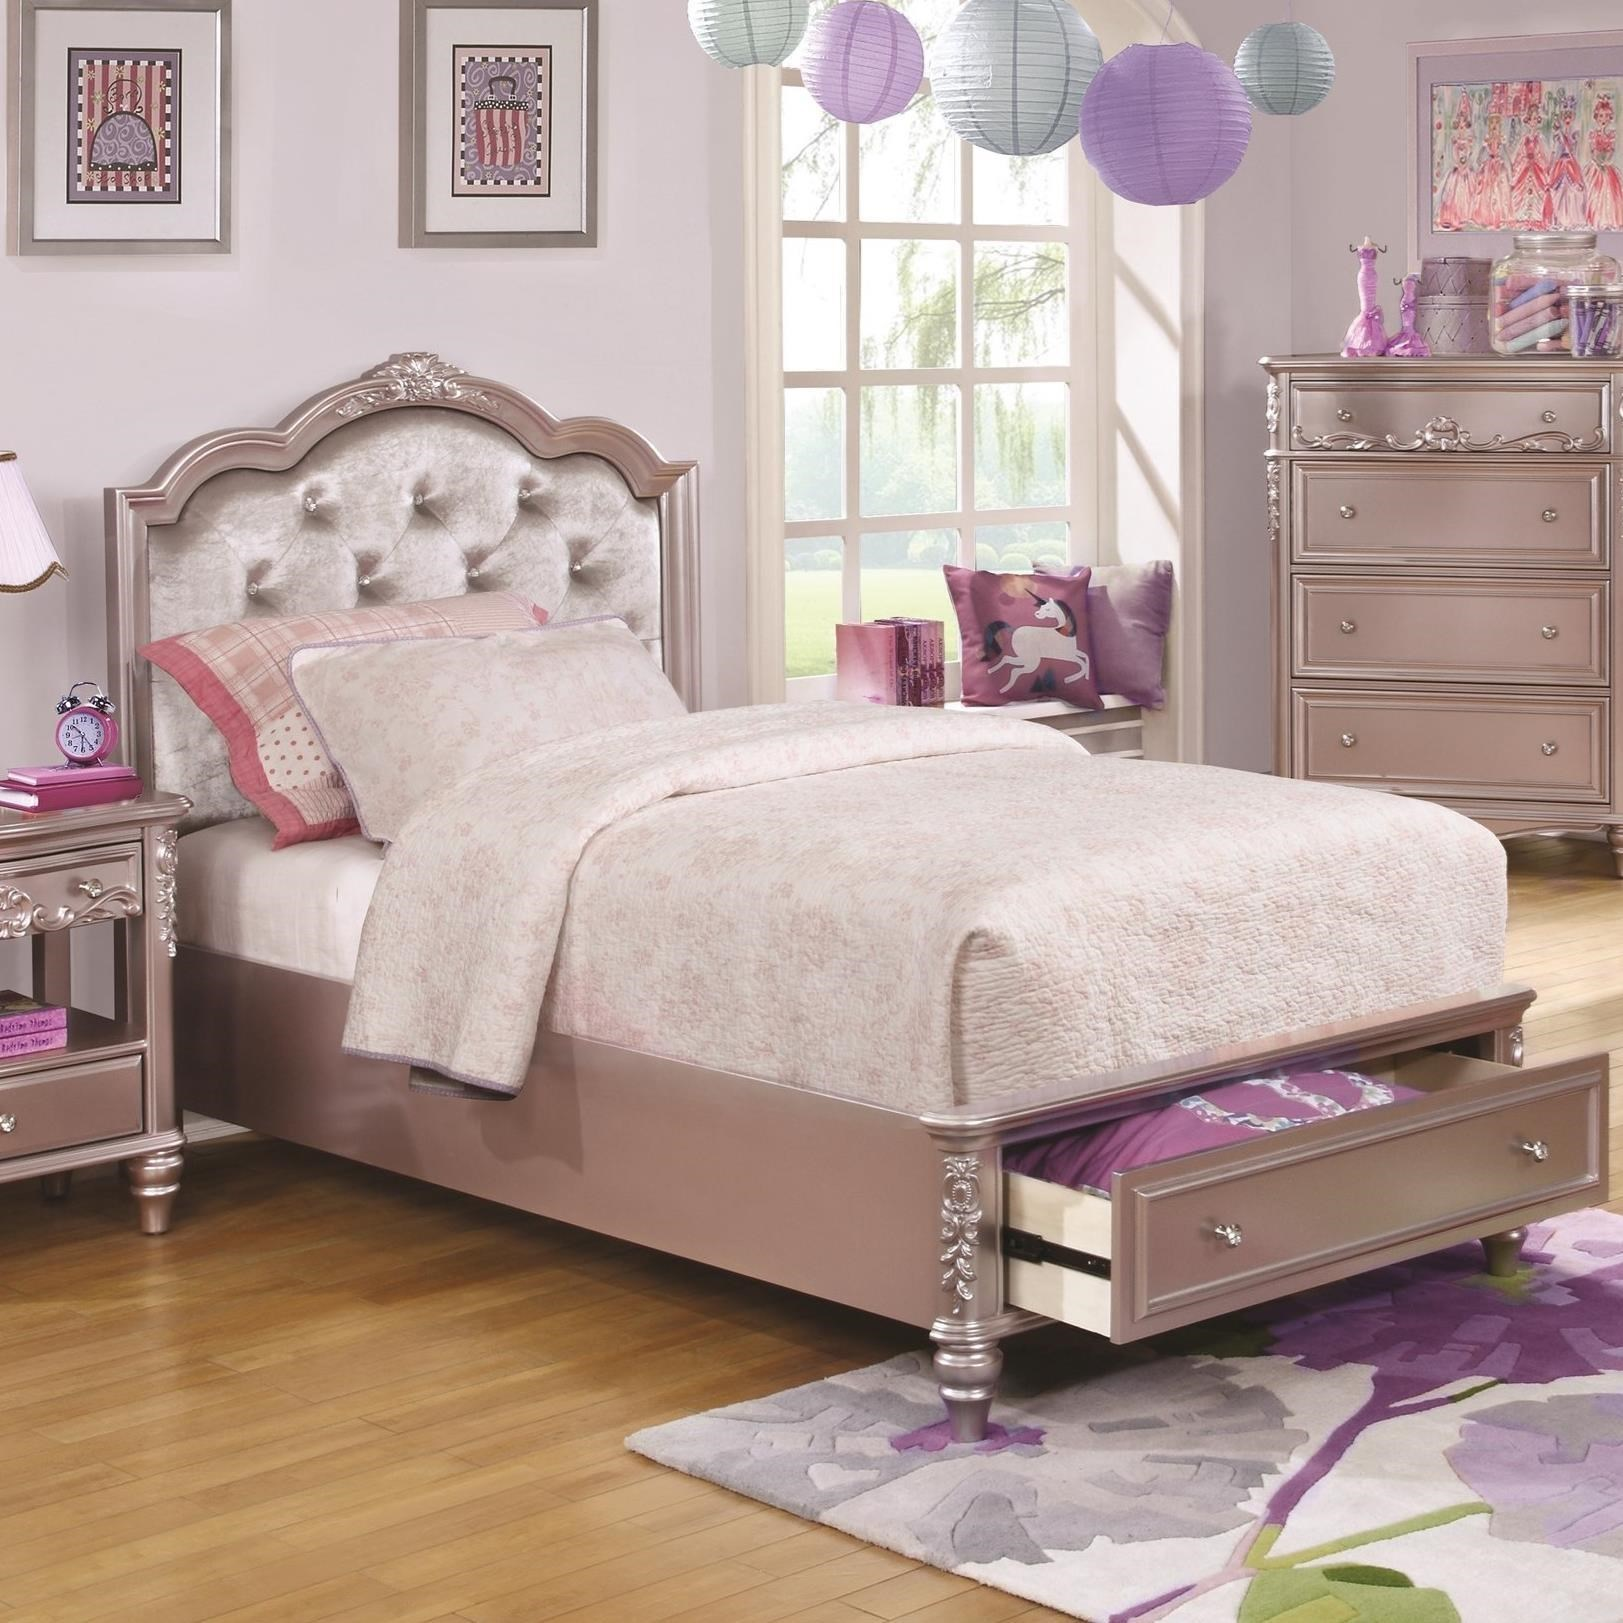 Coaster Caroline 400891t Twin Size Storage Bed With Diamond Tufted Headboard Del Sol Furniture